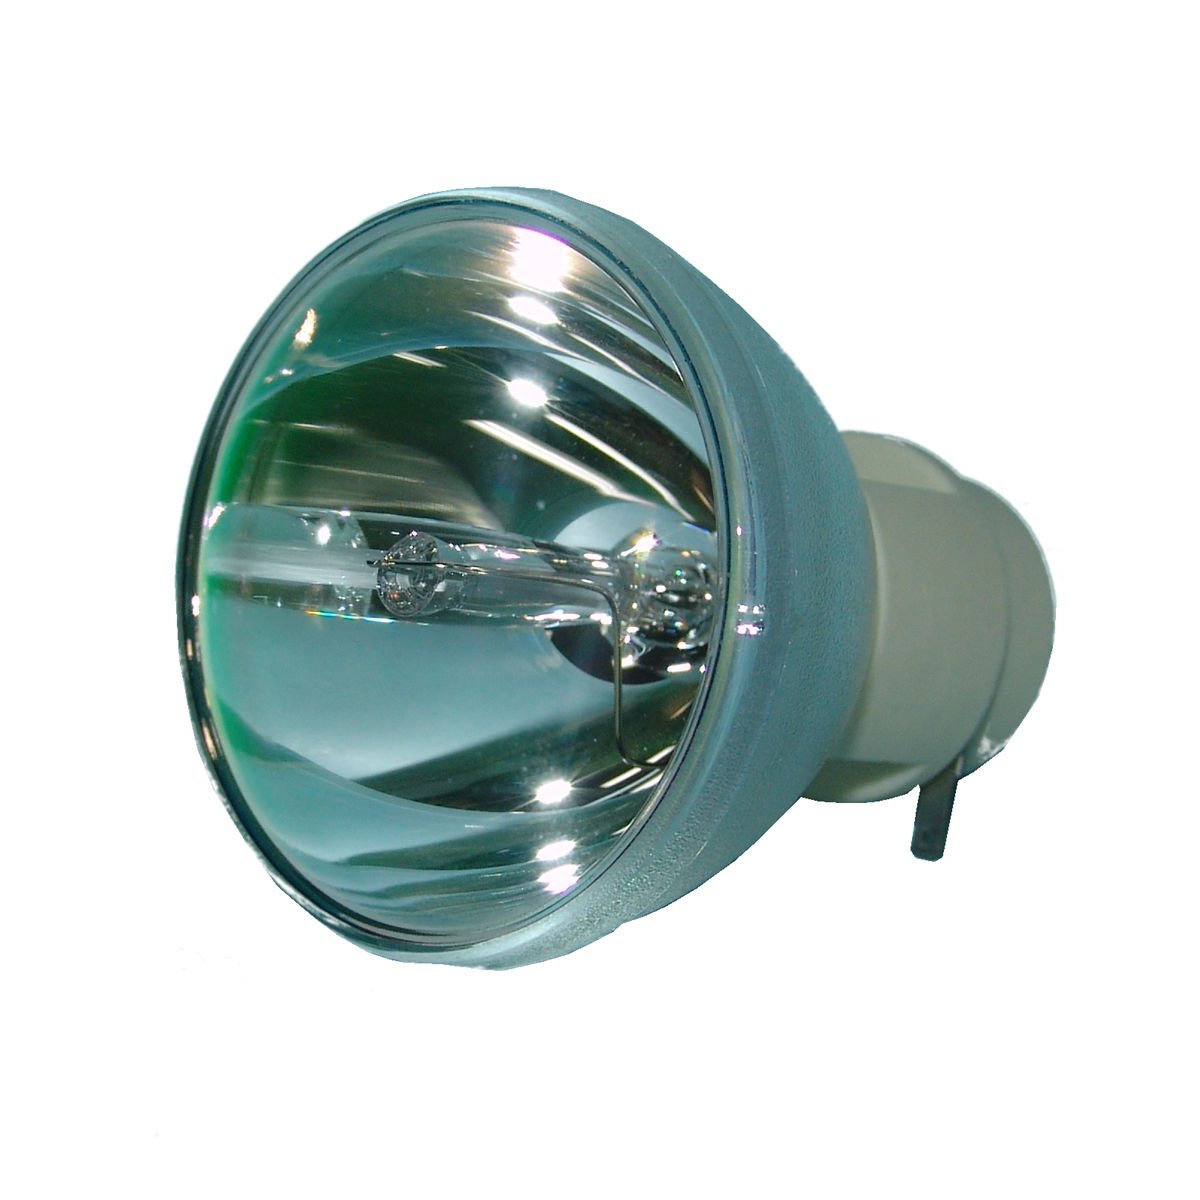 Compatible Bare Bulb SP-LAMP-068 SPLAMP068 for Infocus IN5532 IN5533 IN5534 IN535 Projector Lamp Bulb Without housing replacement projector lamp with housing sp lamp 068 for infocus in5532 in5533 in5534 in535